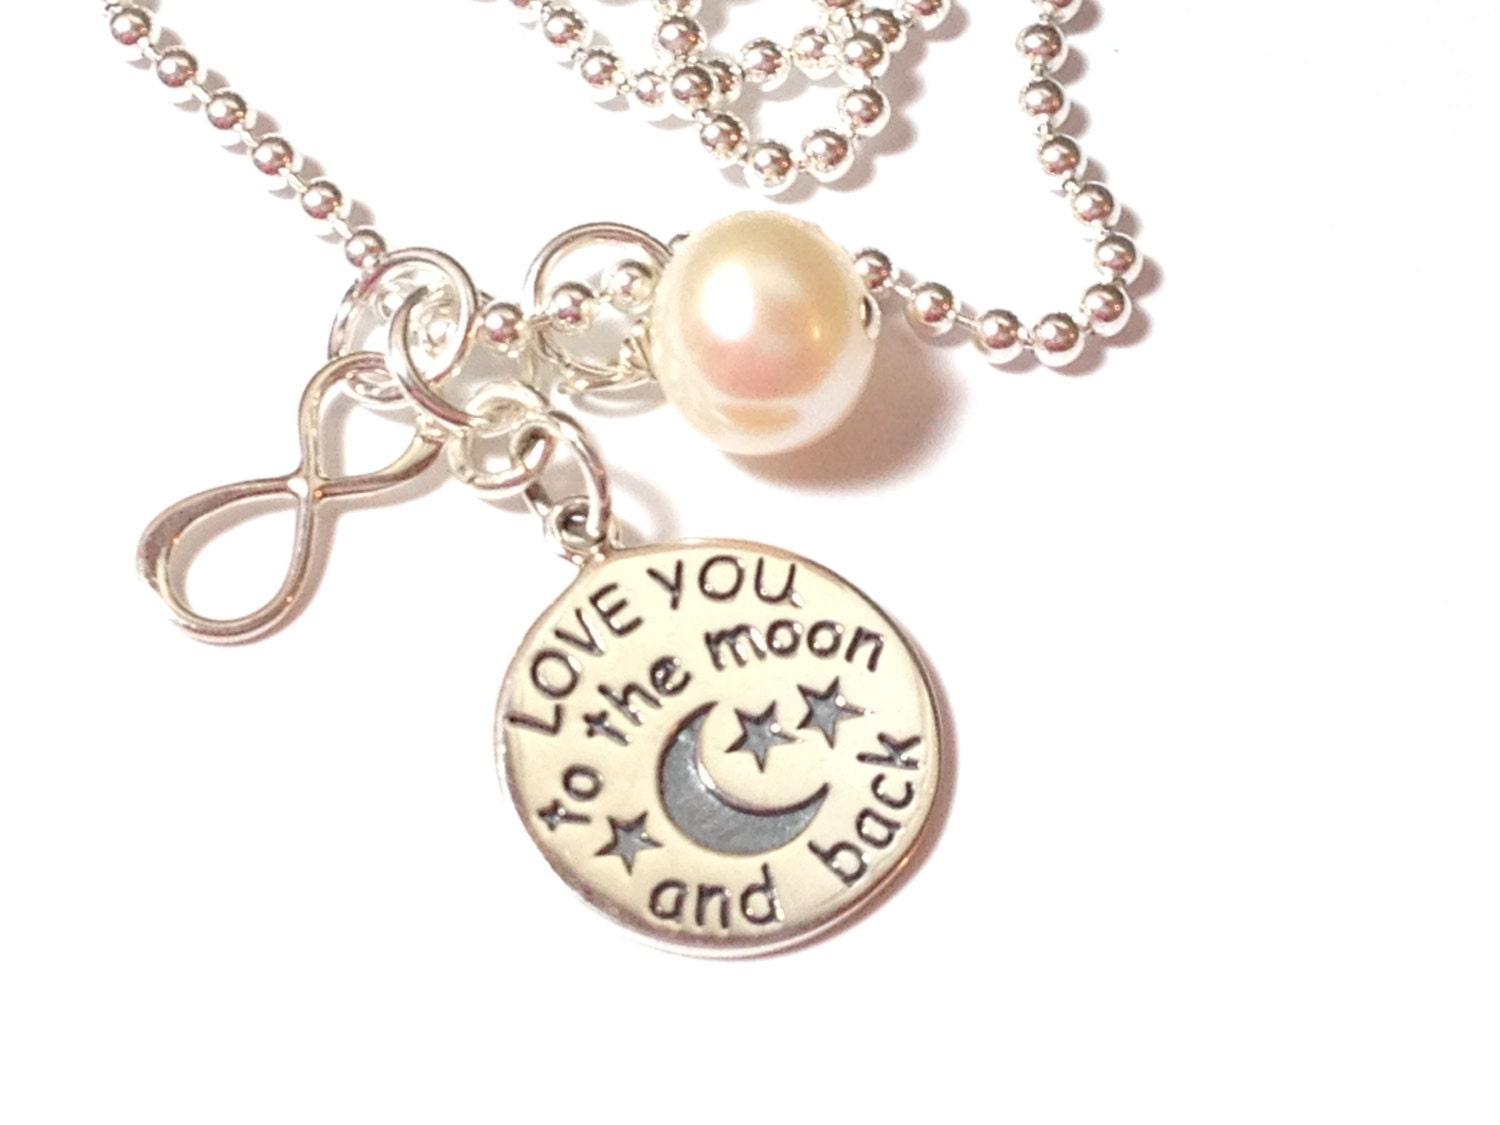 To the Moon Necklace, Infinity Necklace, Birthstone Crystal Necklace, Mommy Necklace, Mommy Charm Jewelry, Love You to the Moon necklace,